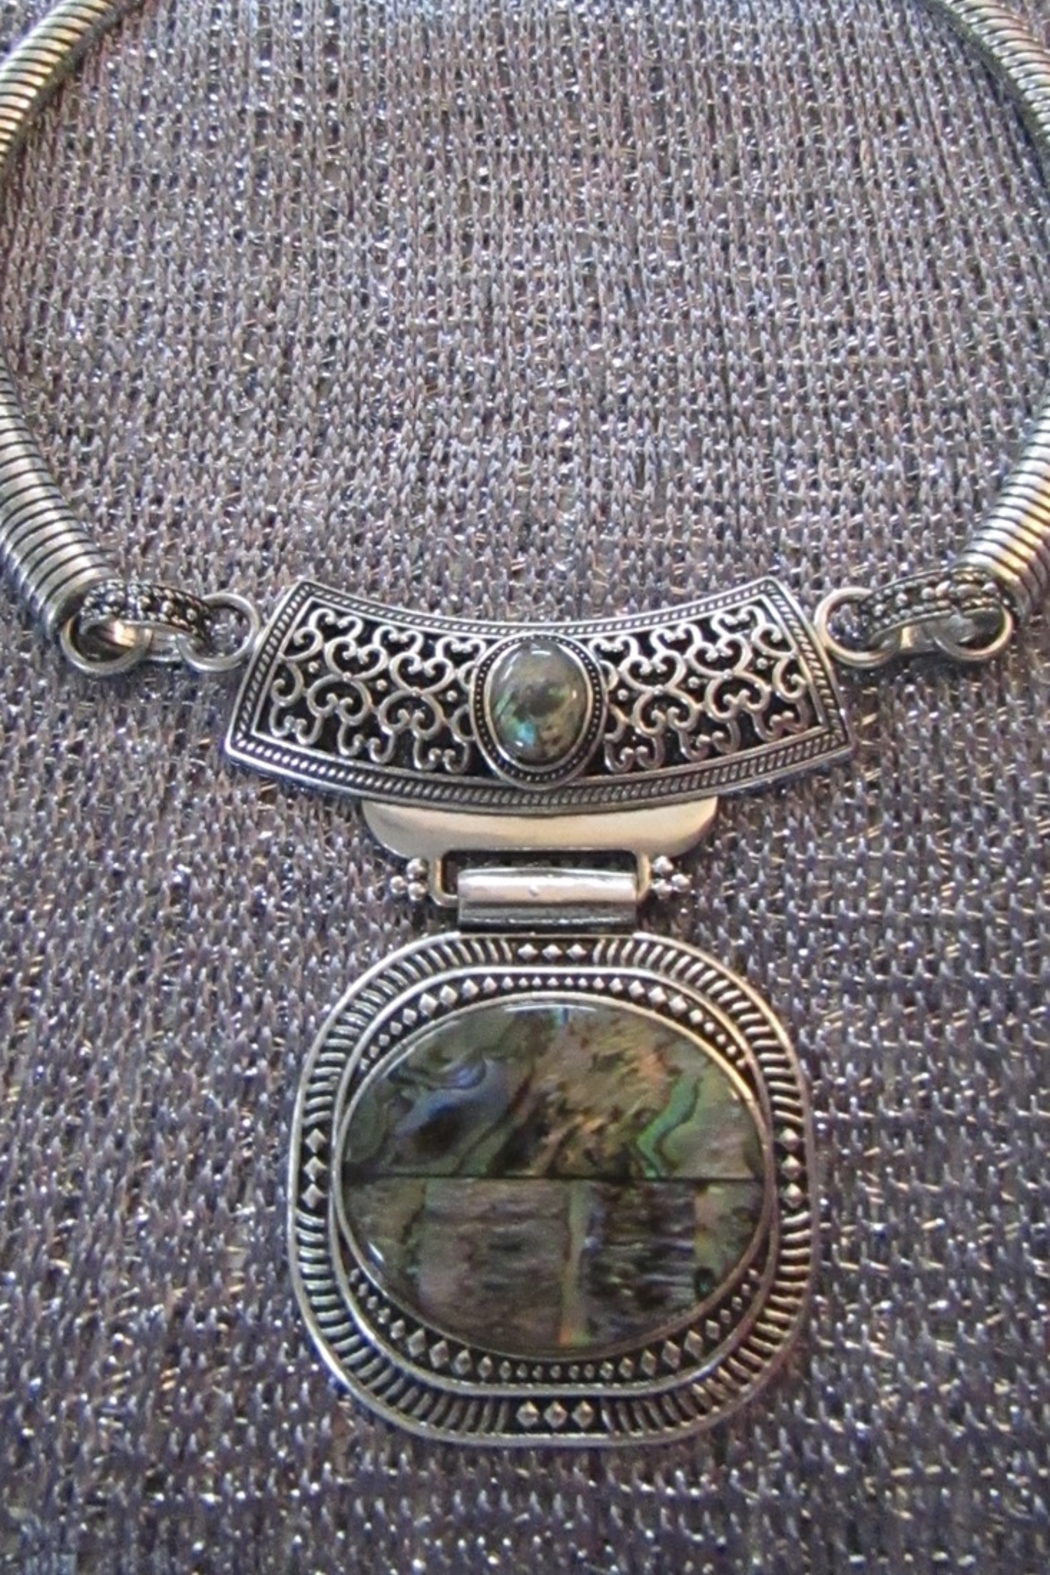 KIMBALS SILVER EMBOSSED METAL CHOKER with ABALONE-LOOK STONE - Main Image